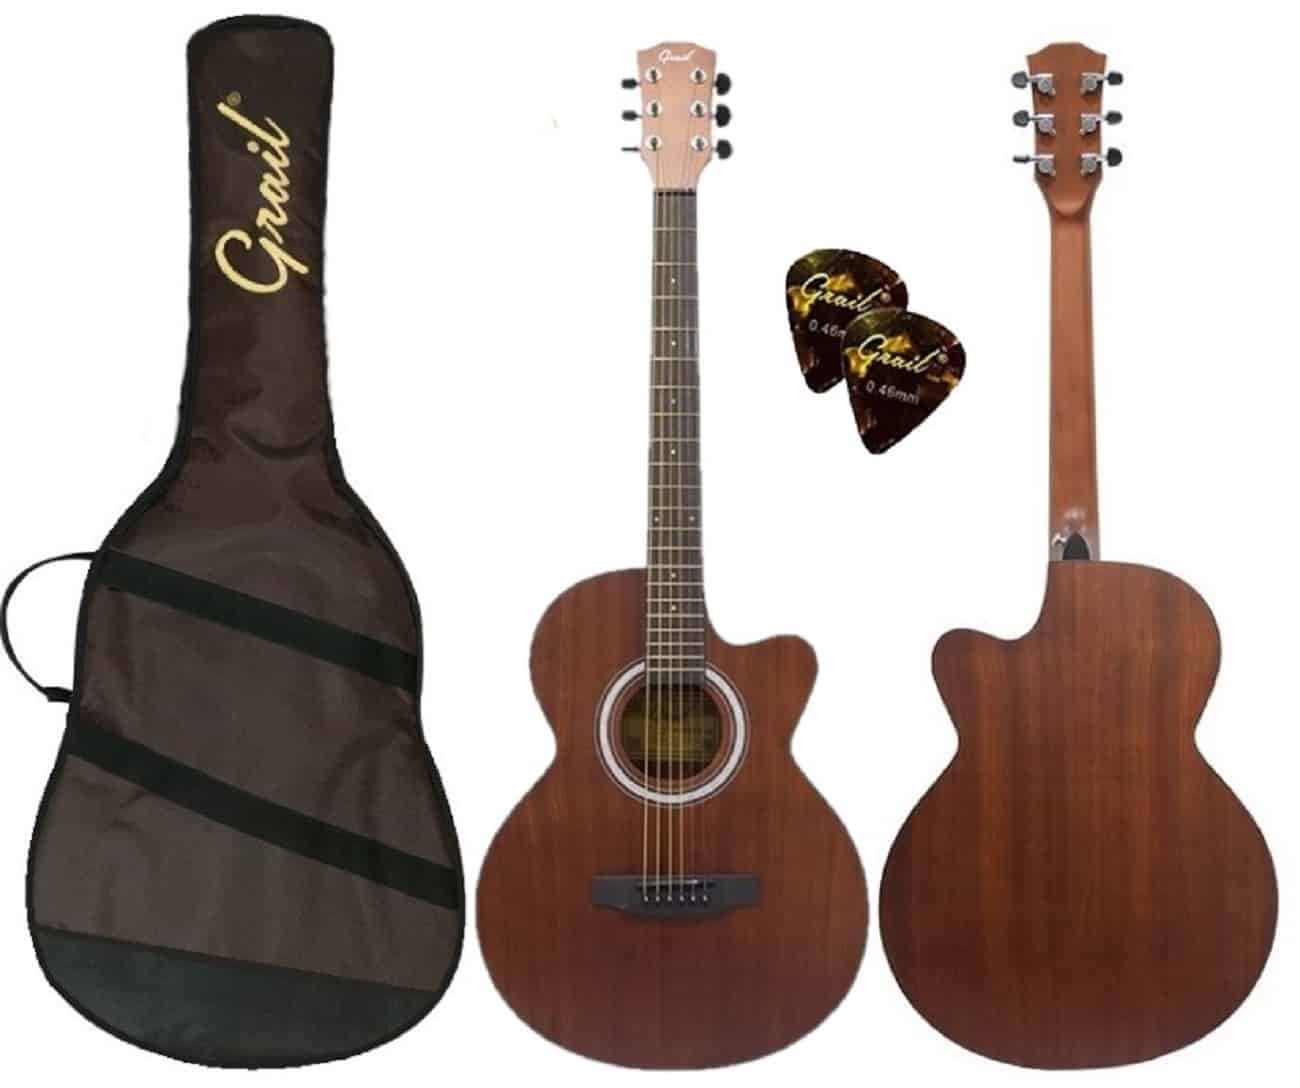 Grail Allure A190C SAS Acoustic Guitar Cutaway All Sapele (FREE High Quality Padded Bag & 2 Picks)